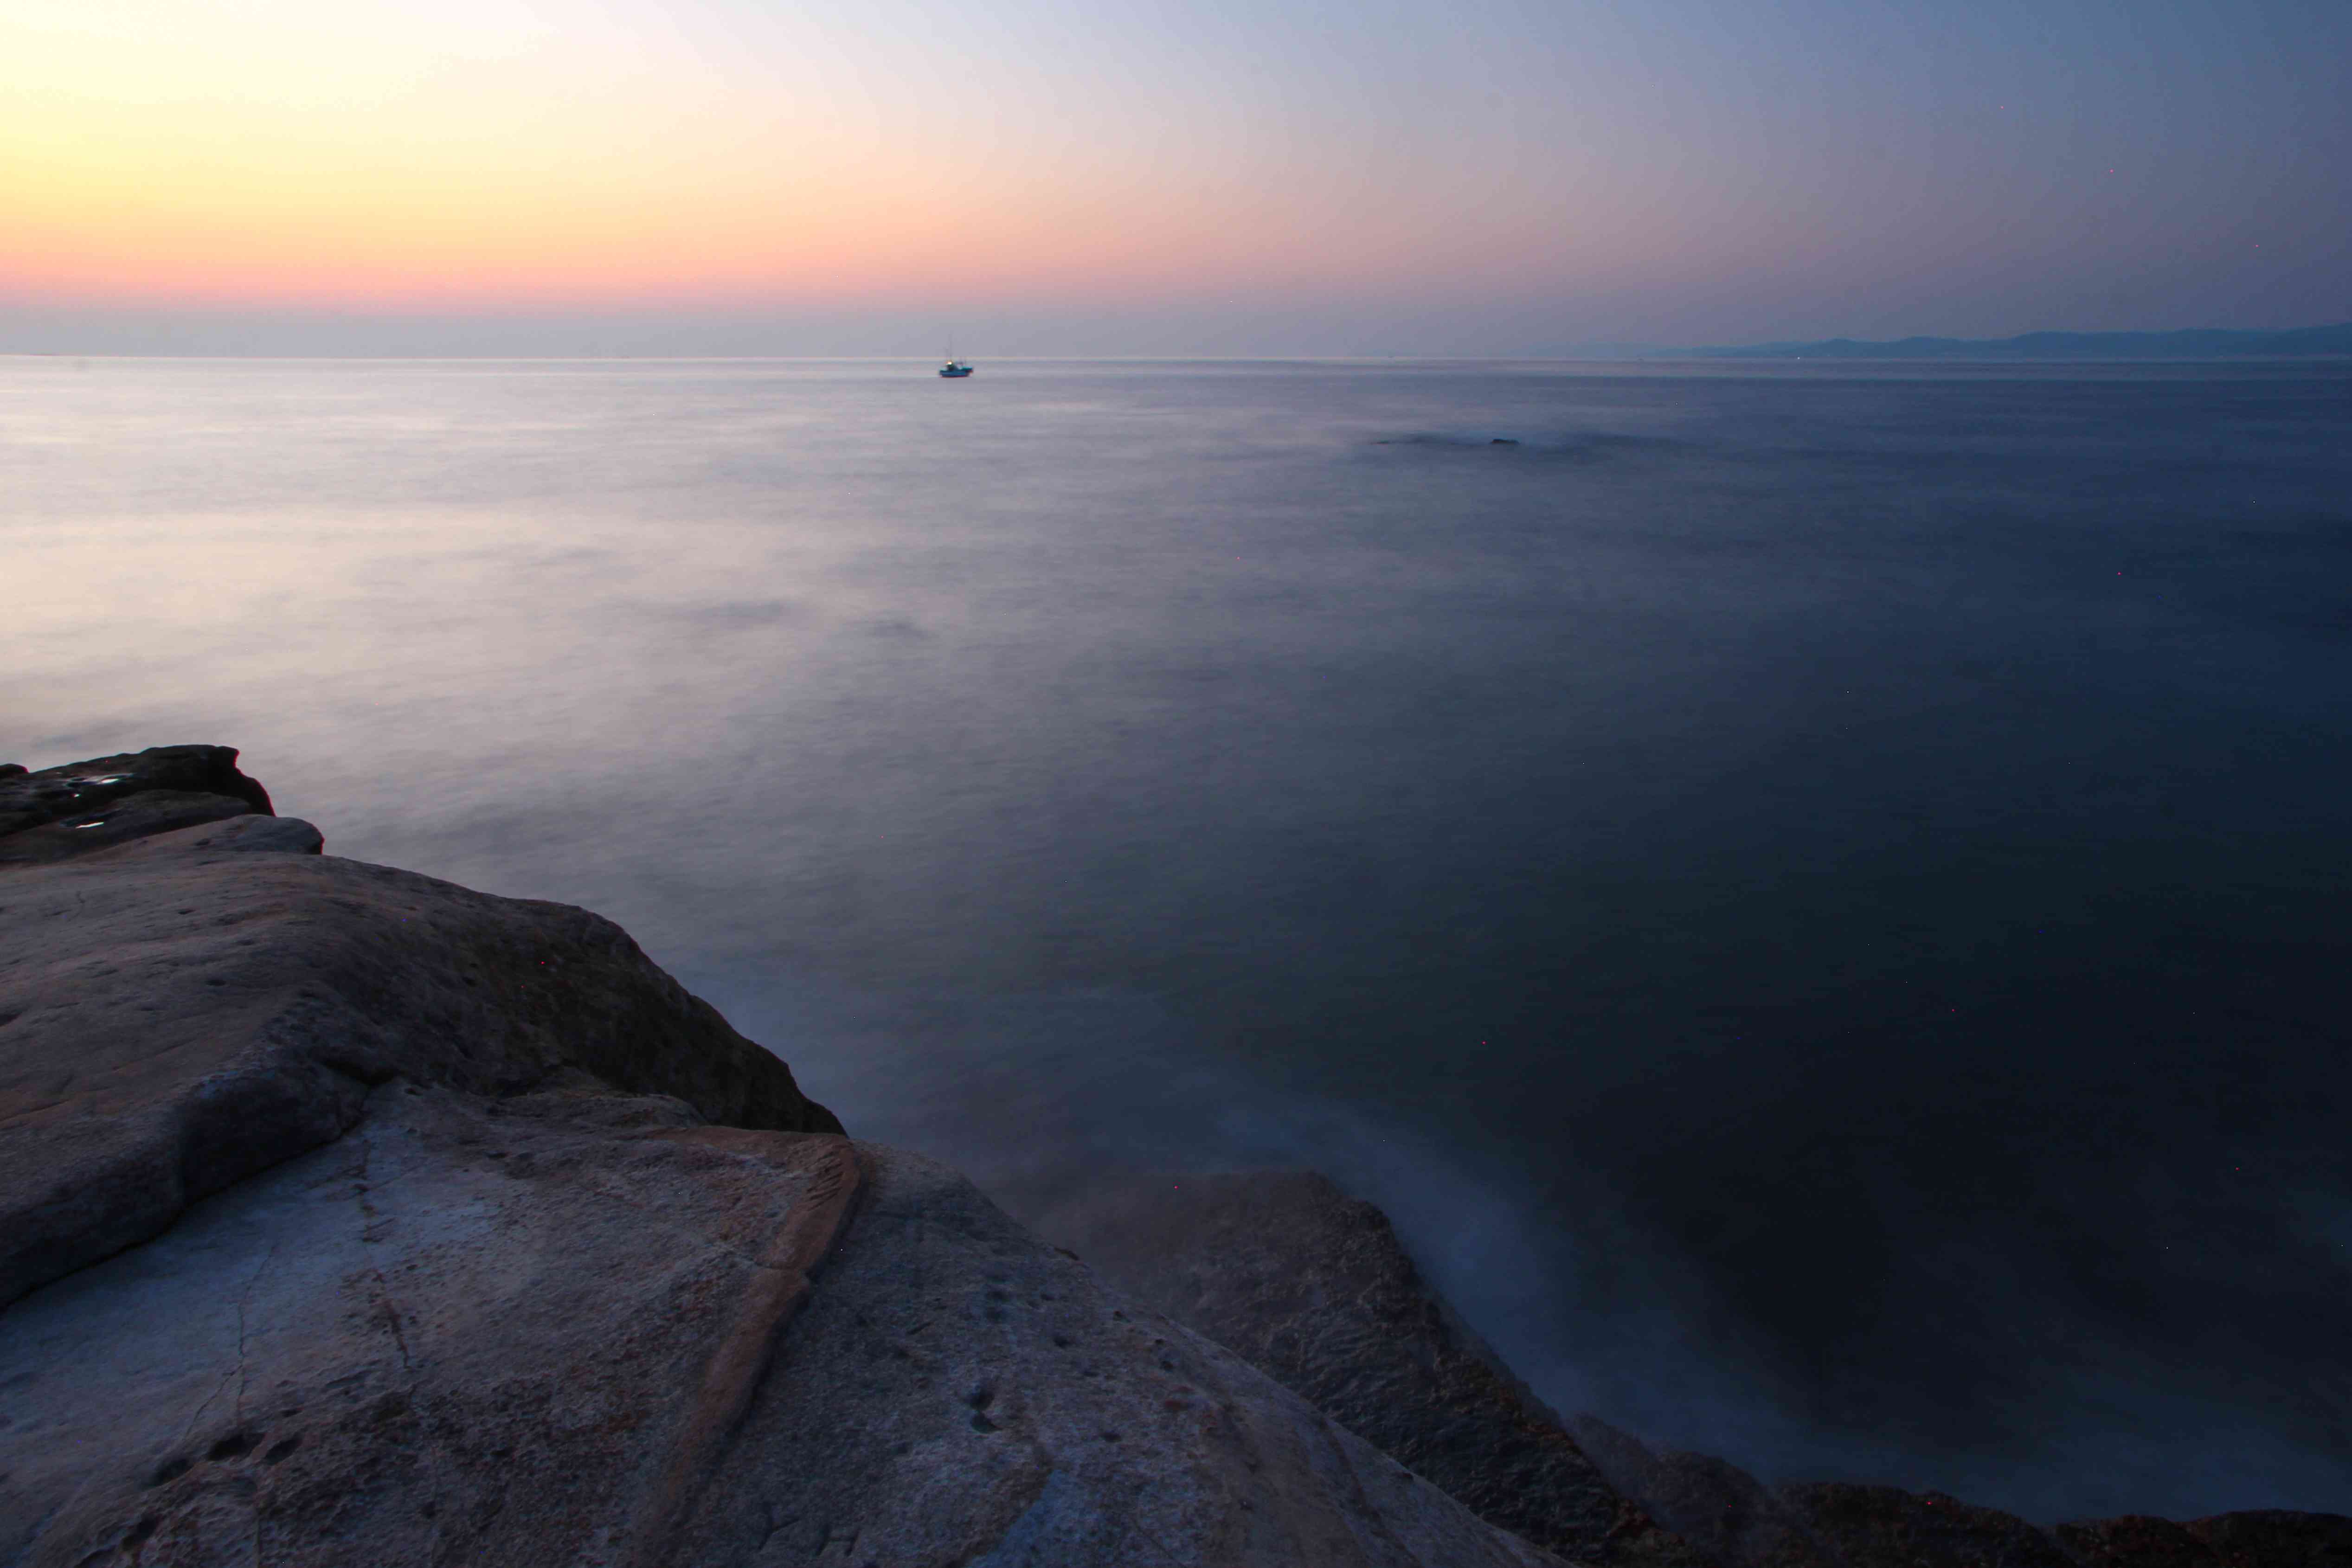 spooky shot of ocean at sunrise along coast with fog and small ship on horizon